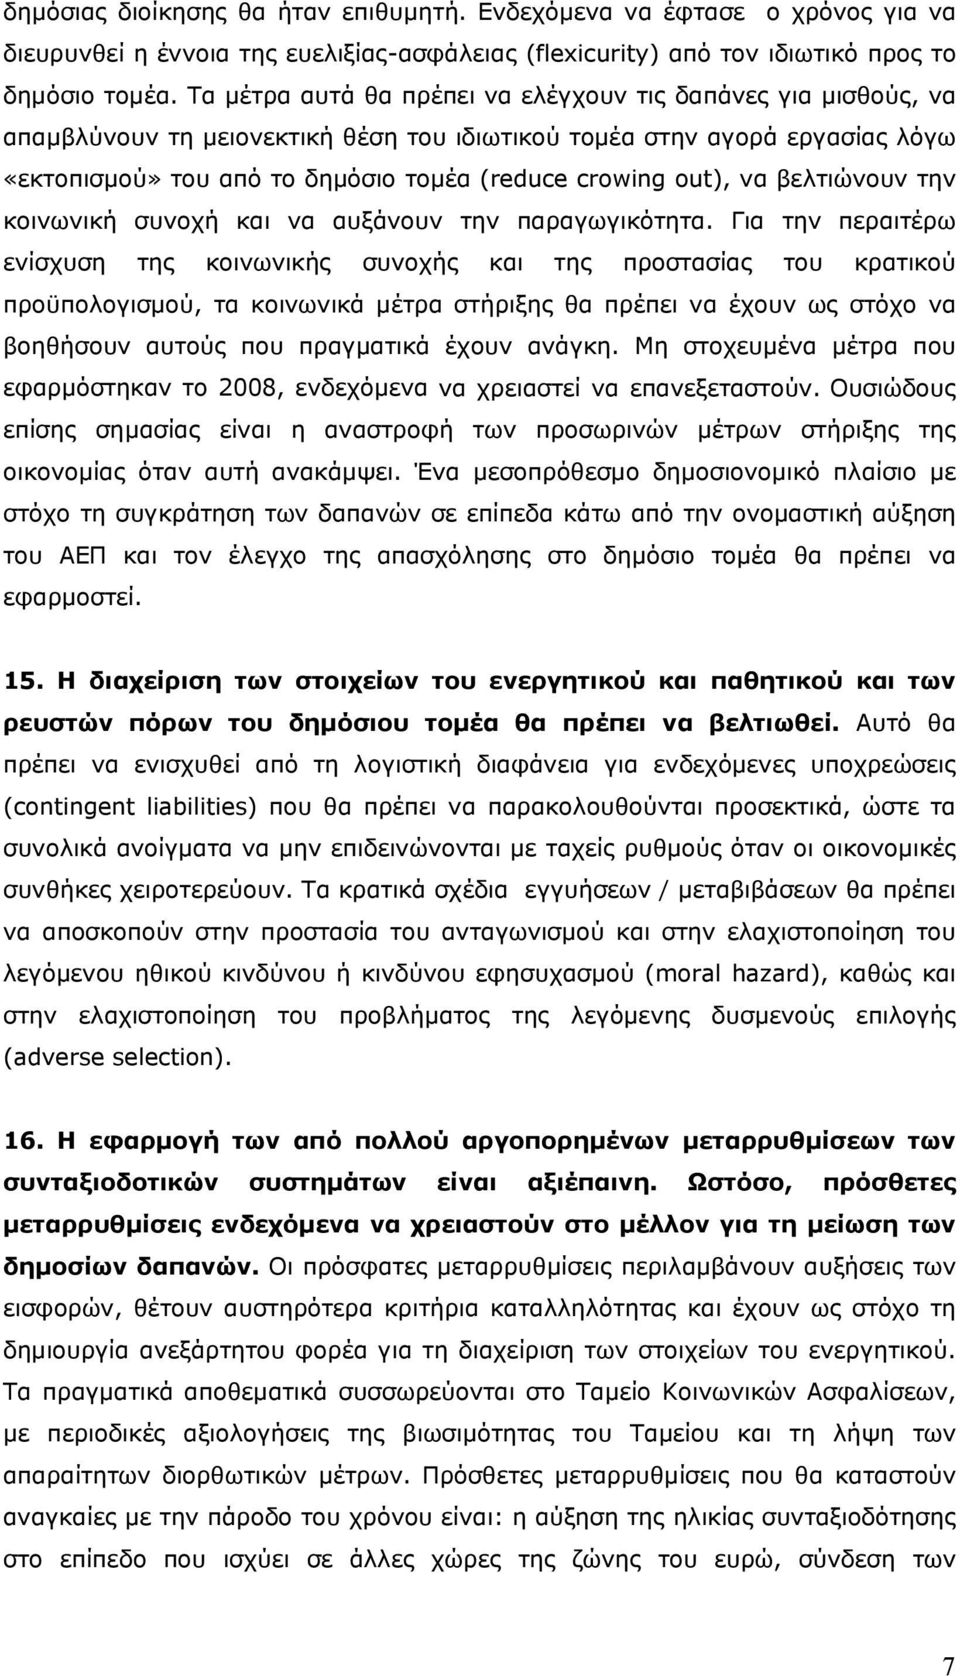 out), να βελτιώνουν την κοινωνική συνοχή και να αυξάνουν την παραγωγικότητα.